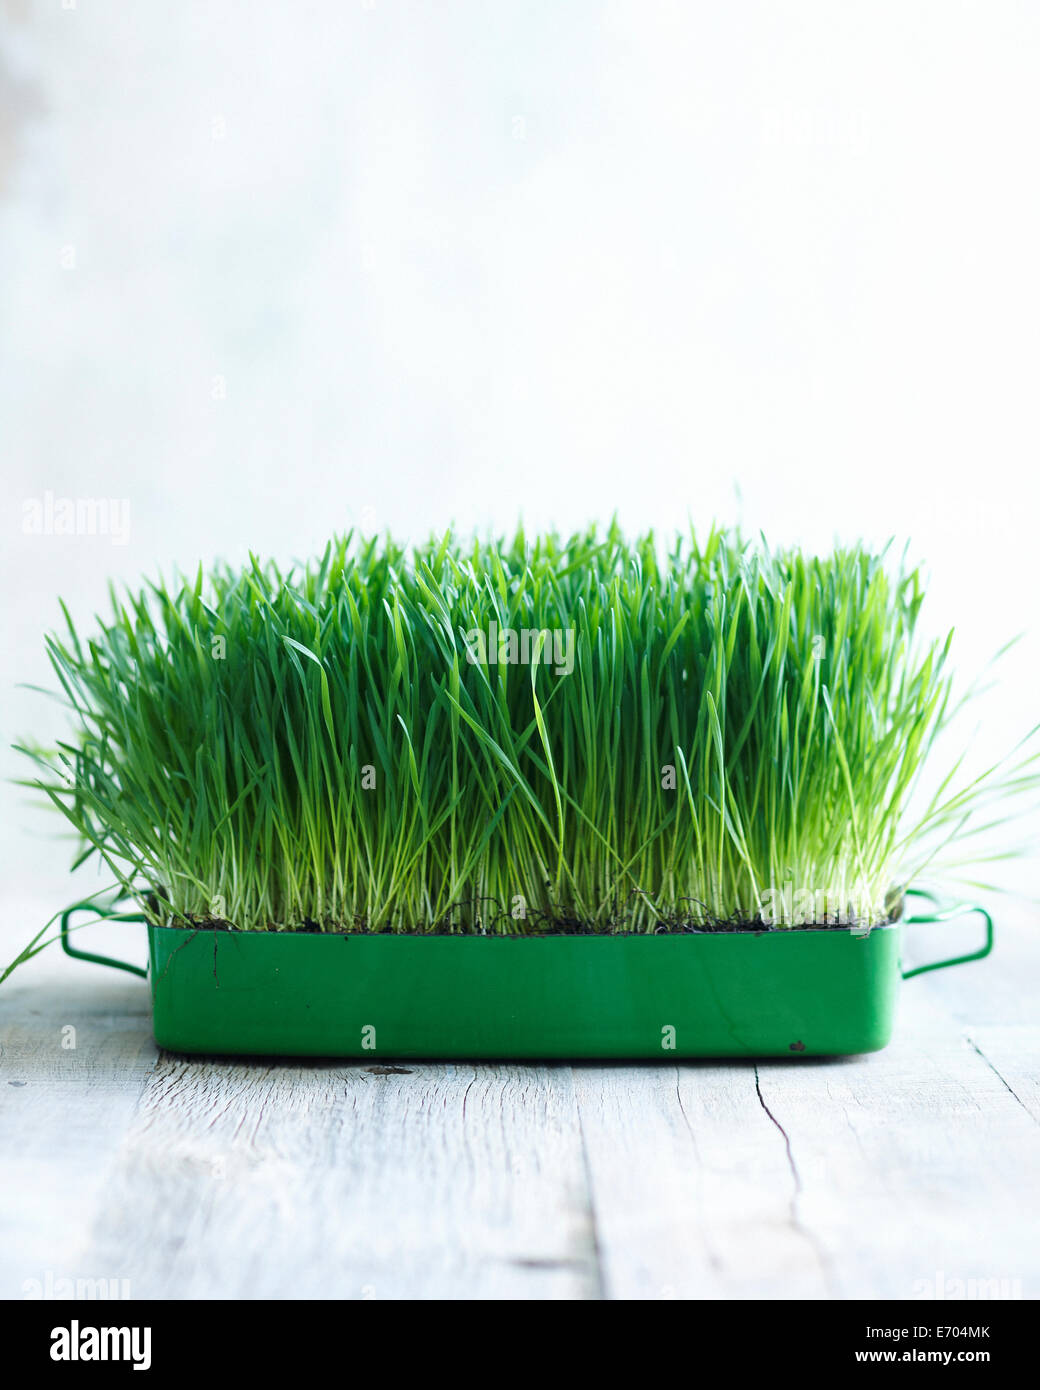 Wheatgrass growing in small container - Stock Image